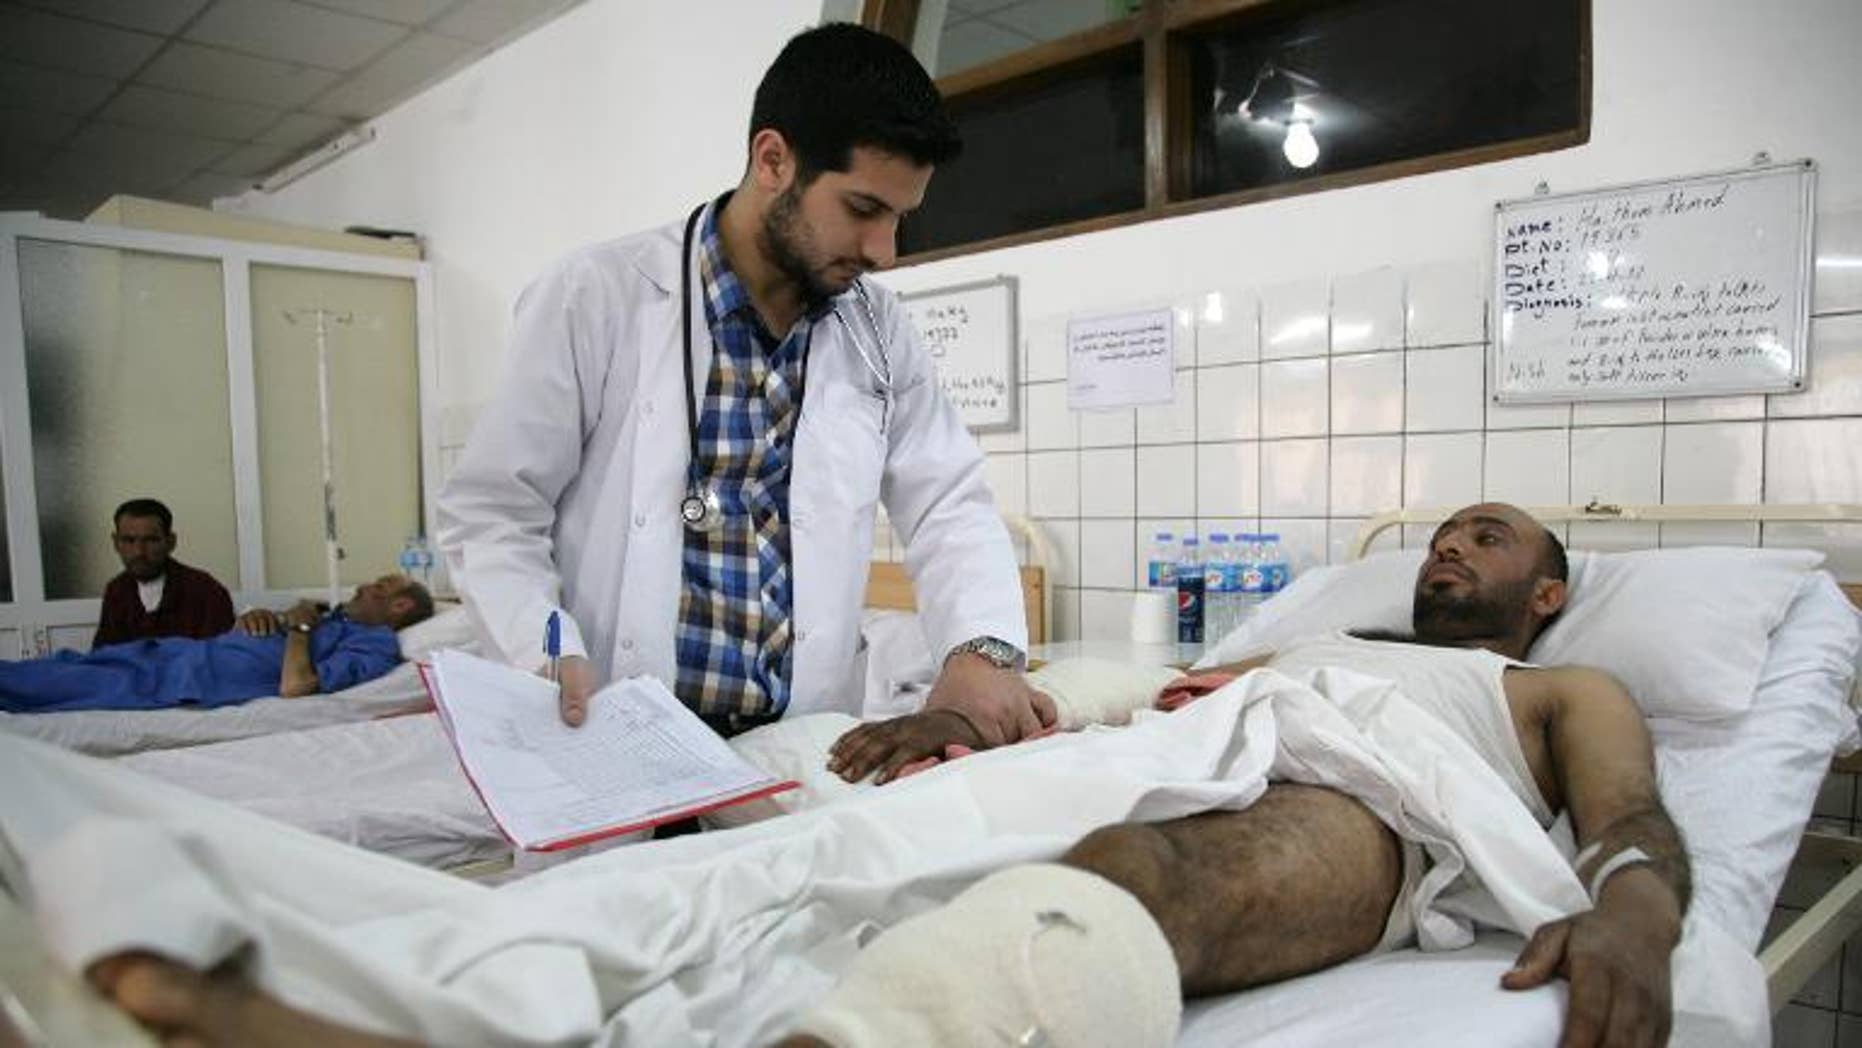 A doctor checks on a wounded man in hospital in Arbil on April 25, 2013